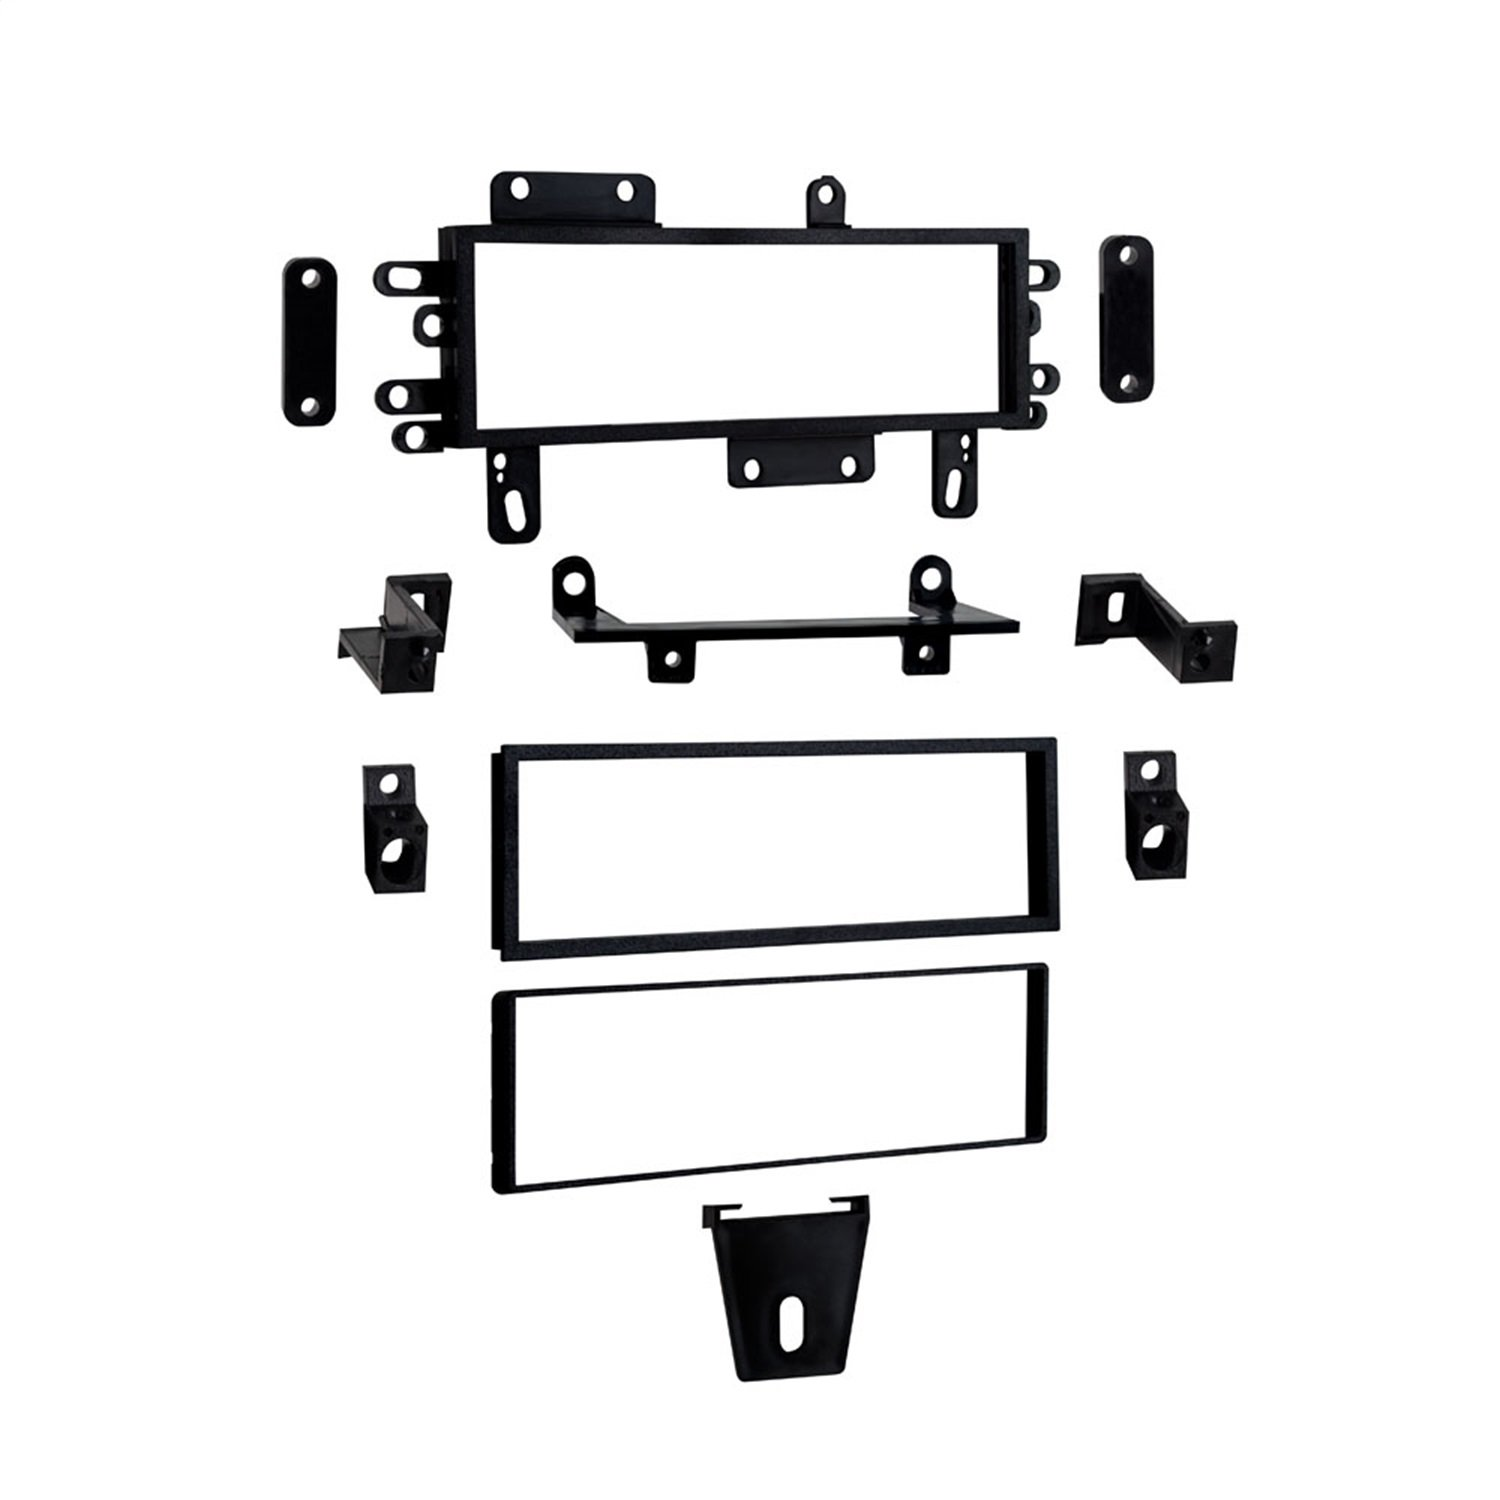 Amazon.com: Metra 99-5510 Installation Multi-Kit for Select 1982-up  Ford/Mercury/Jeep Vehicles (Black): Car Electronics